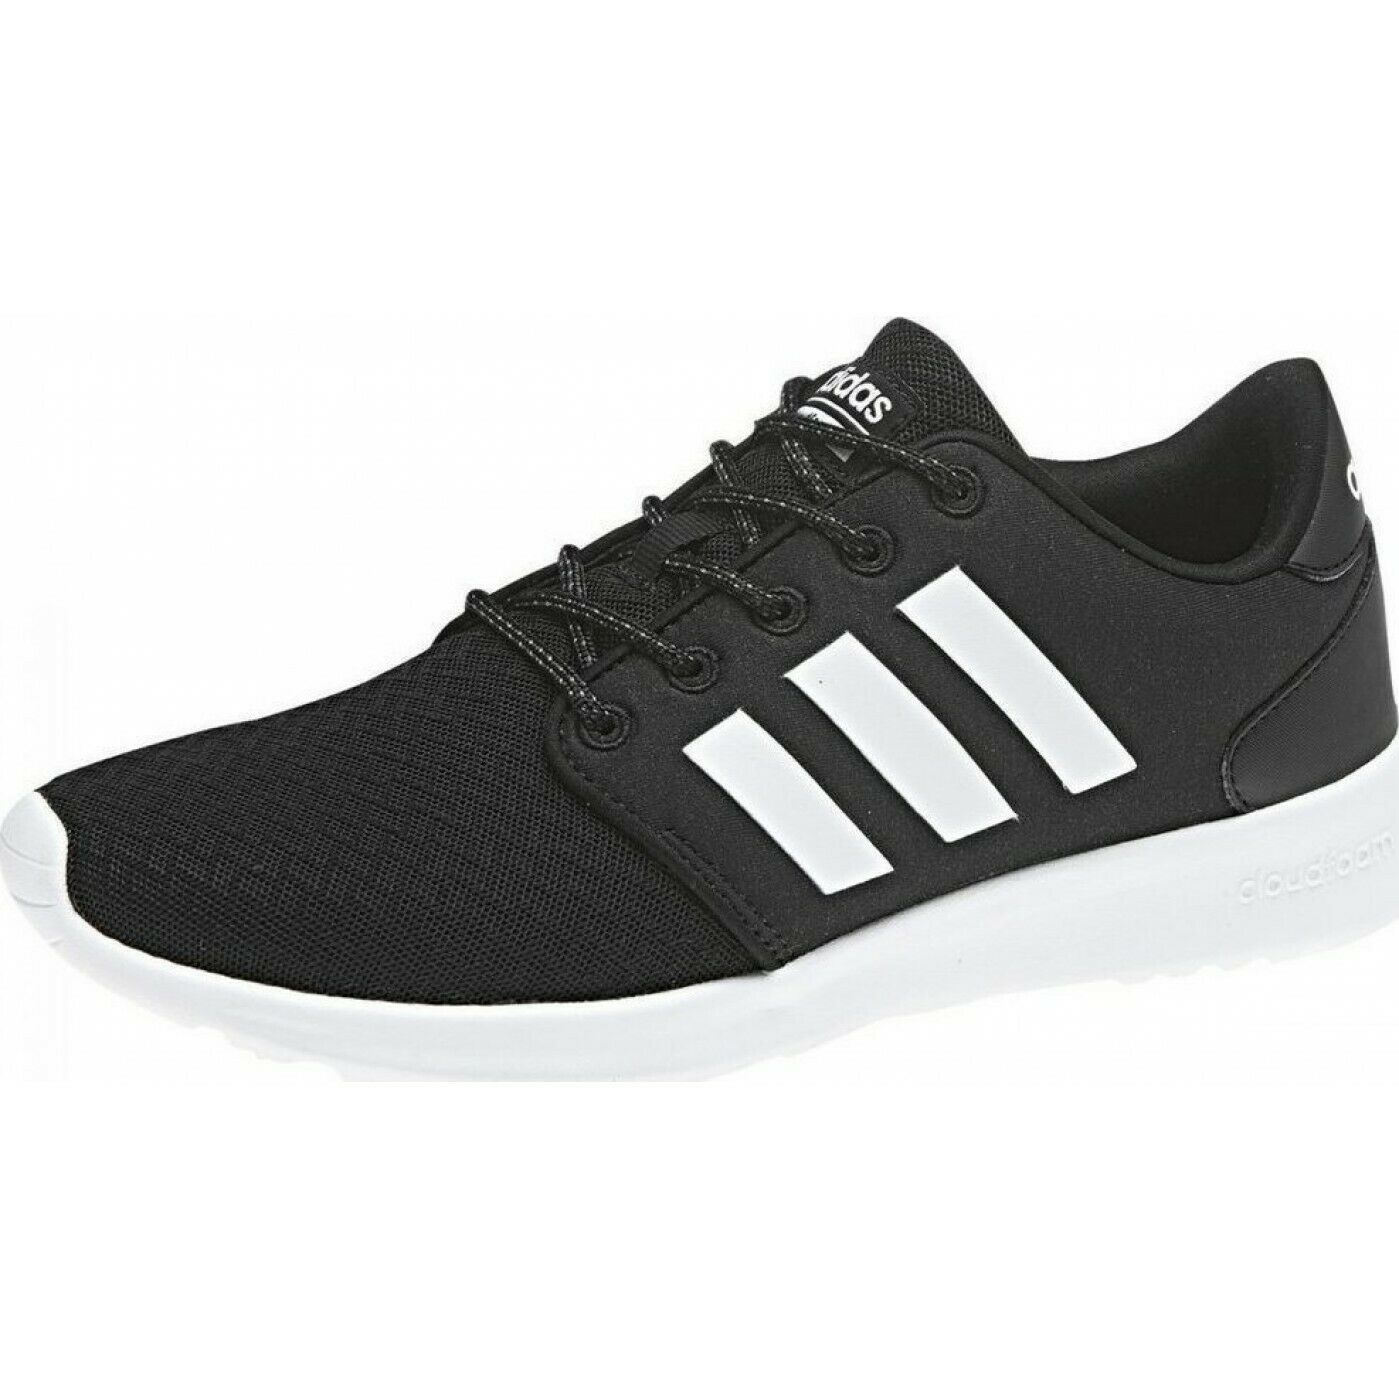 Adidas Mujer Zapatillas Running Cloudfoam Qt Racer Lifestyle Db0275